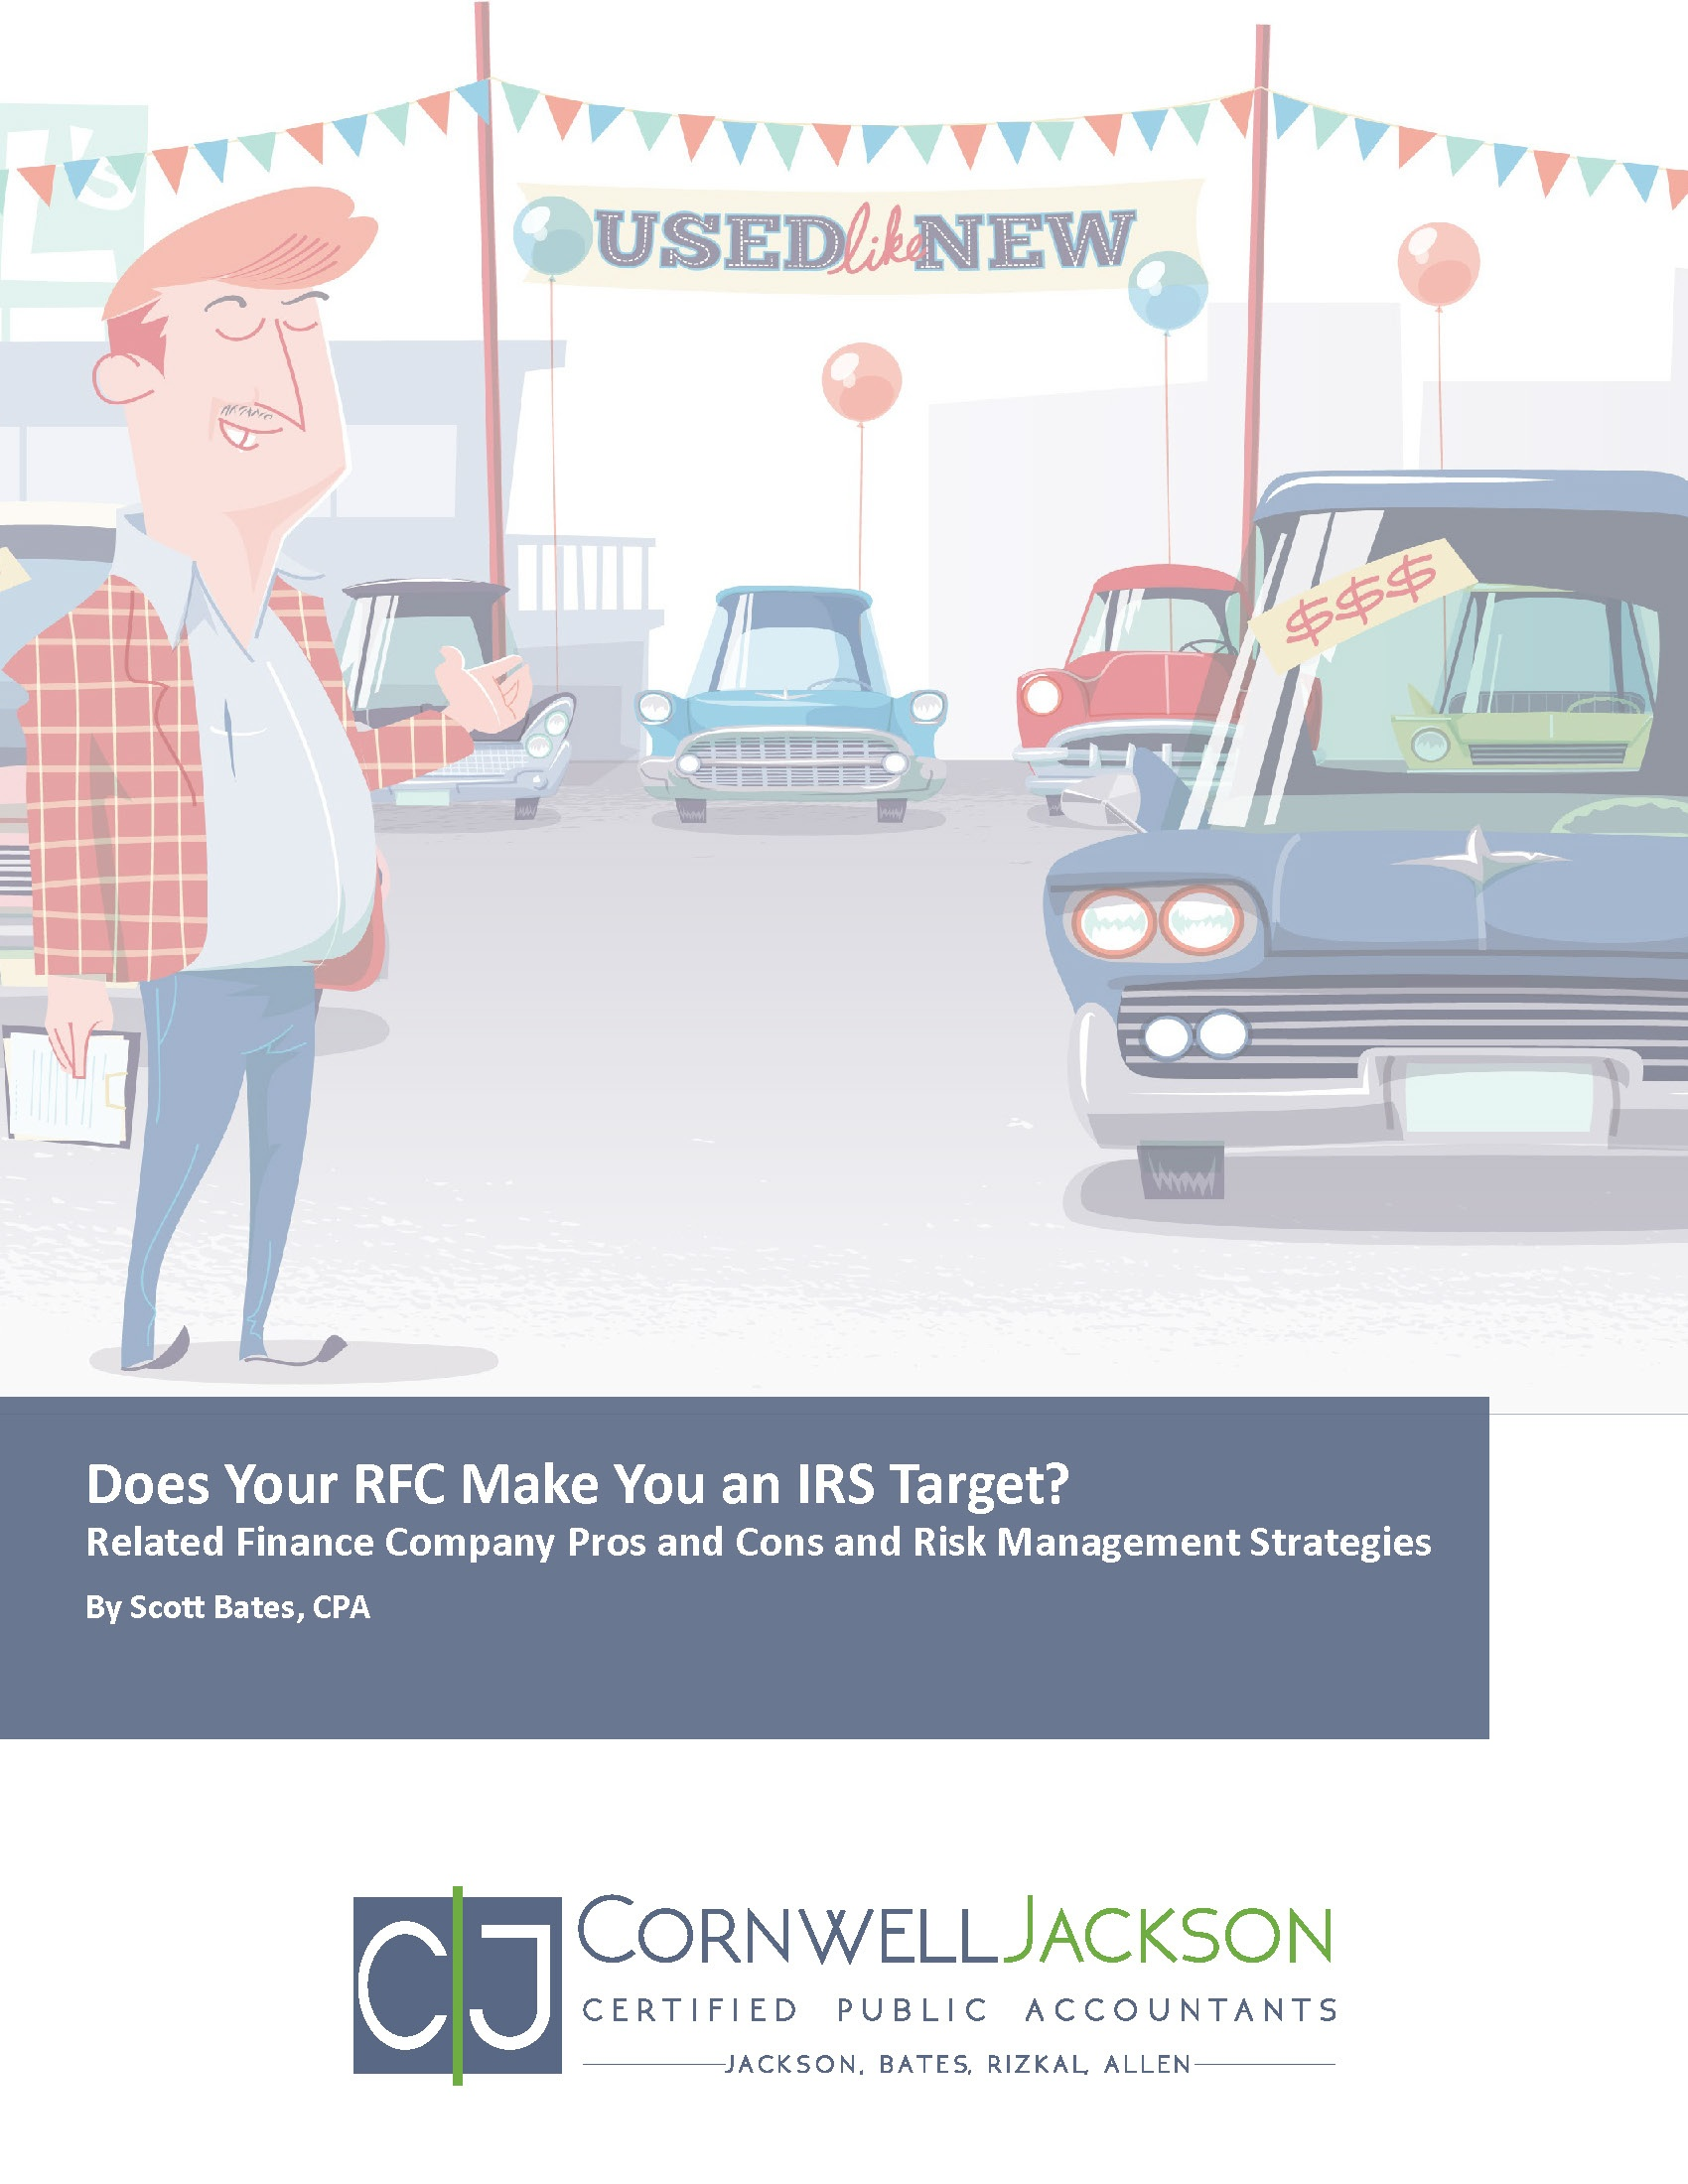 Does Your RFC Make You an IRS Target - Scott Bates, CPA.jpg